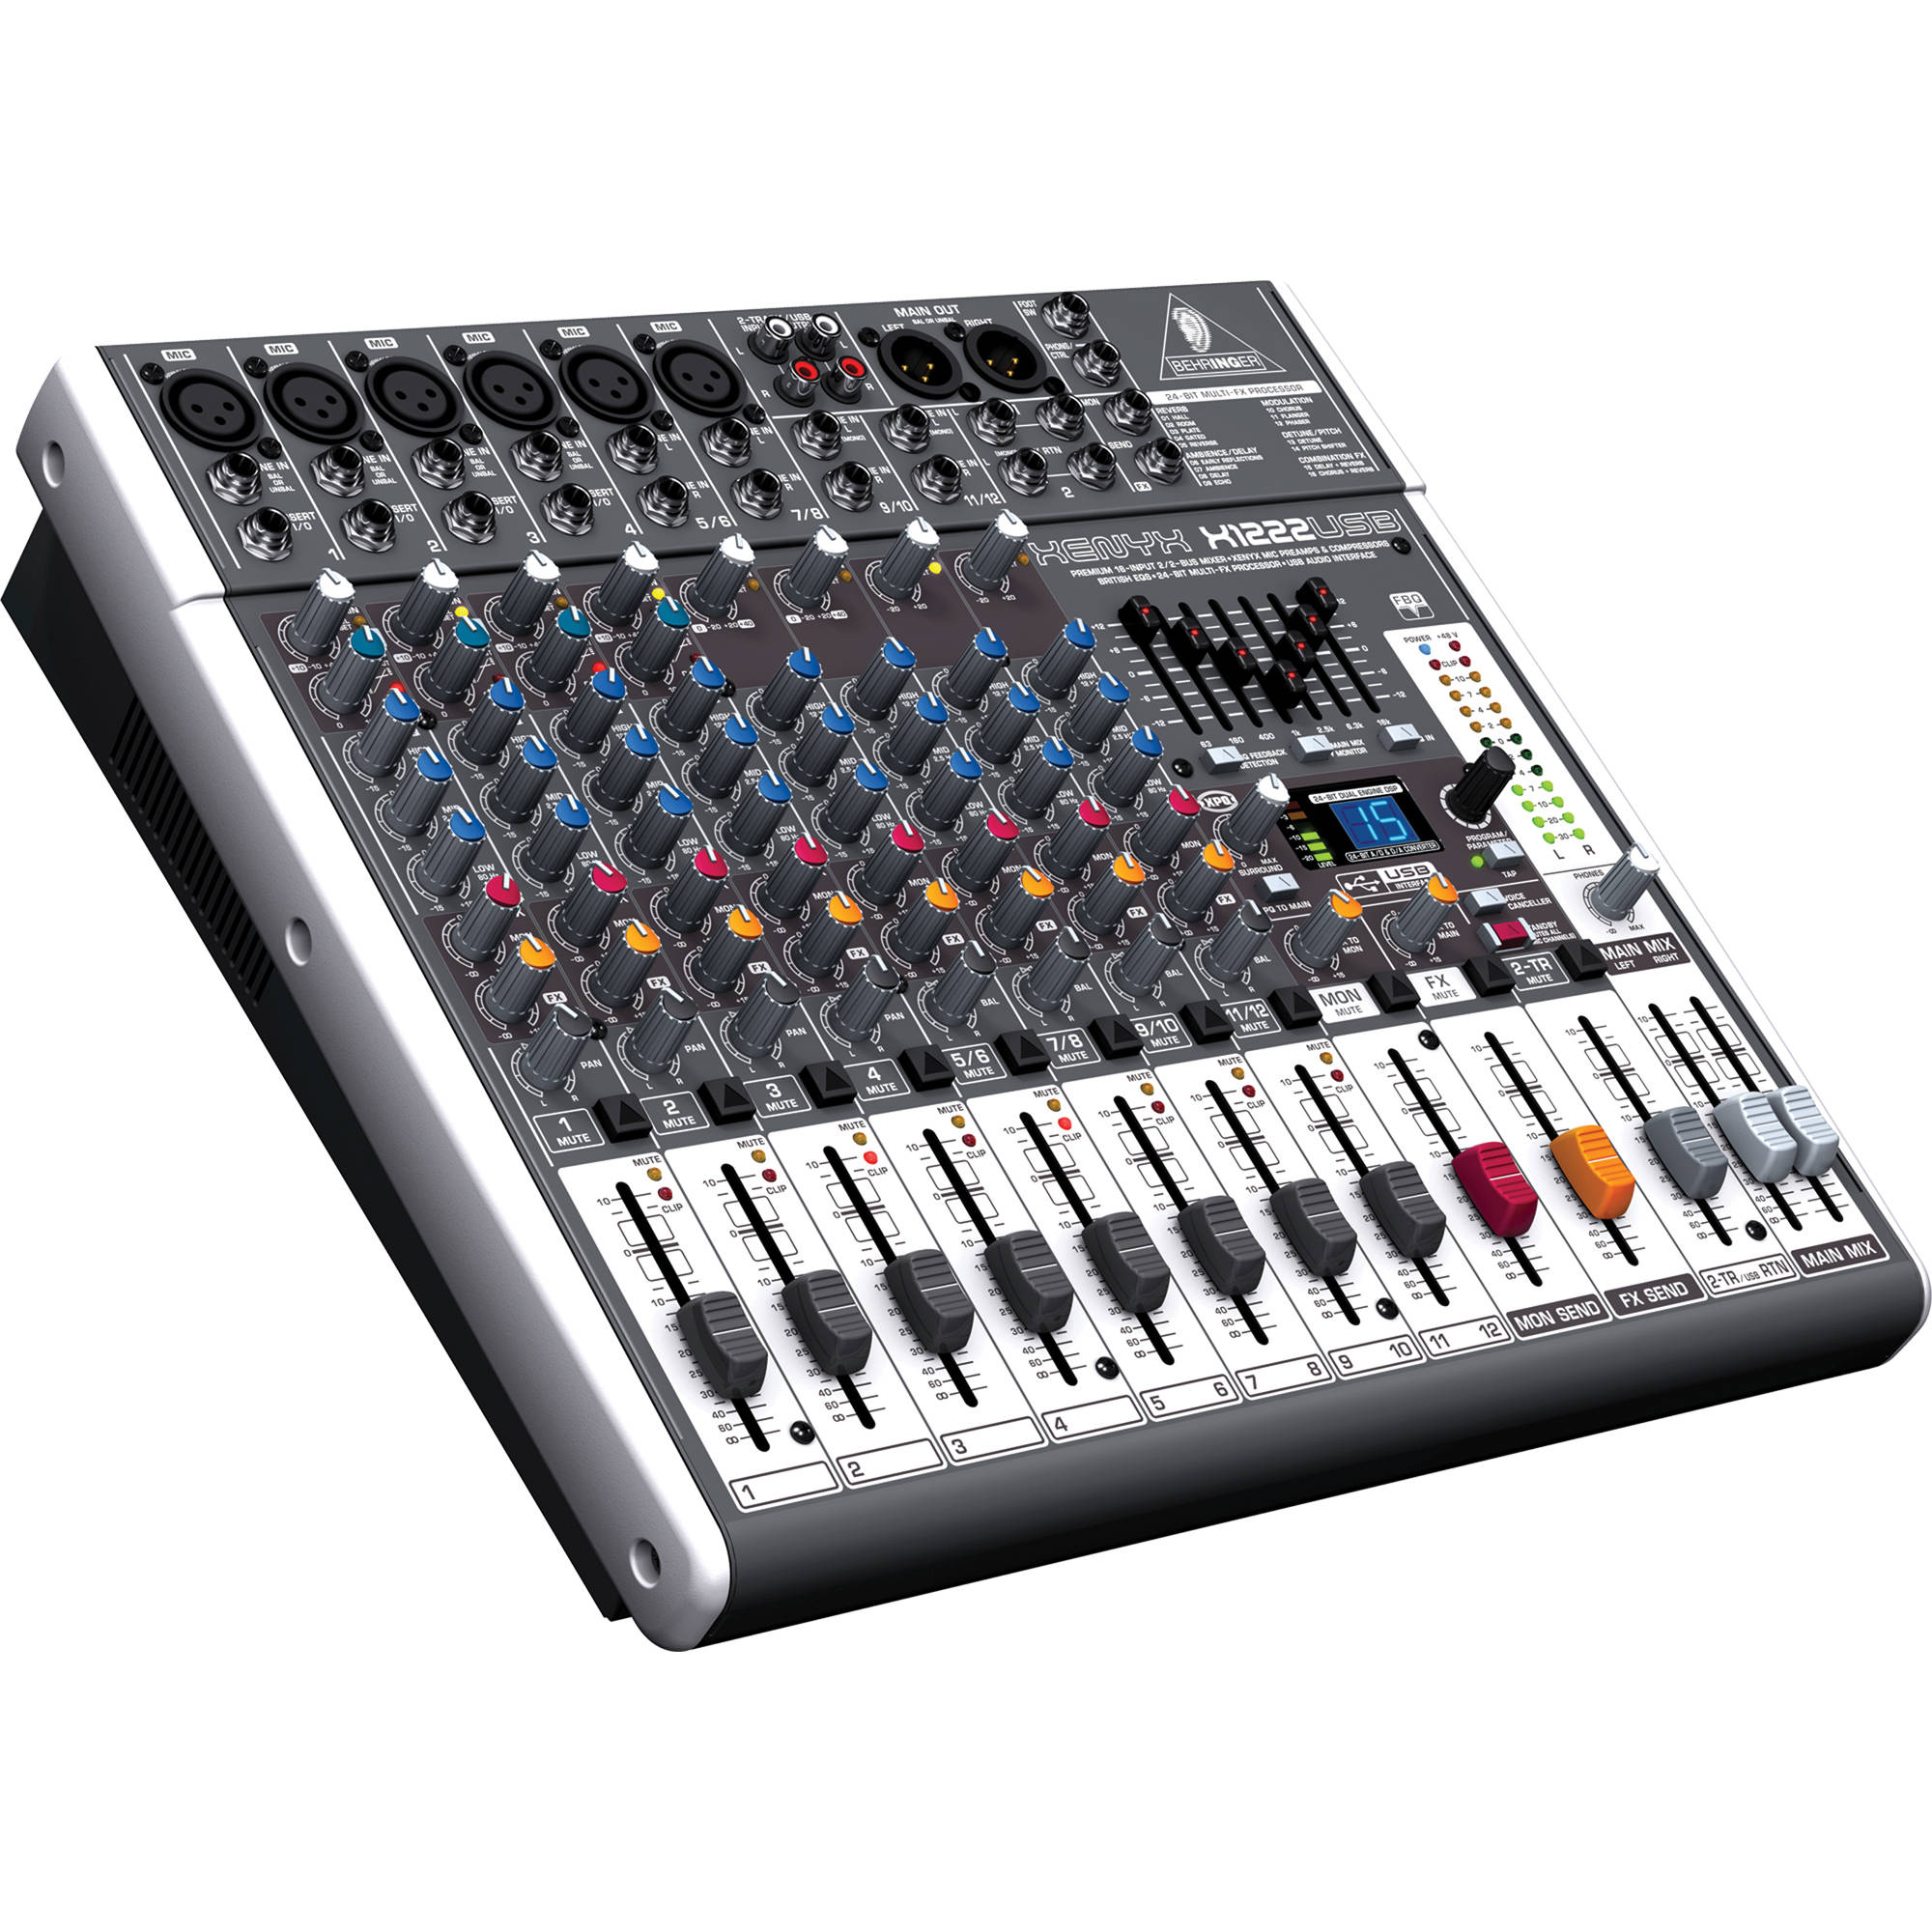 Behringer XENYX X1222USB - 16-Input USB Audio Mixer with Effects